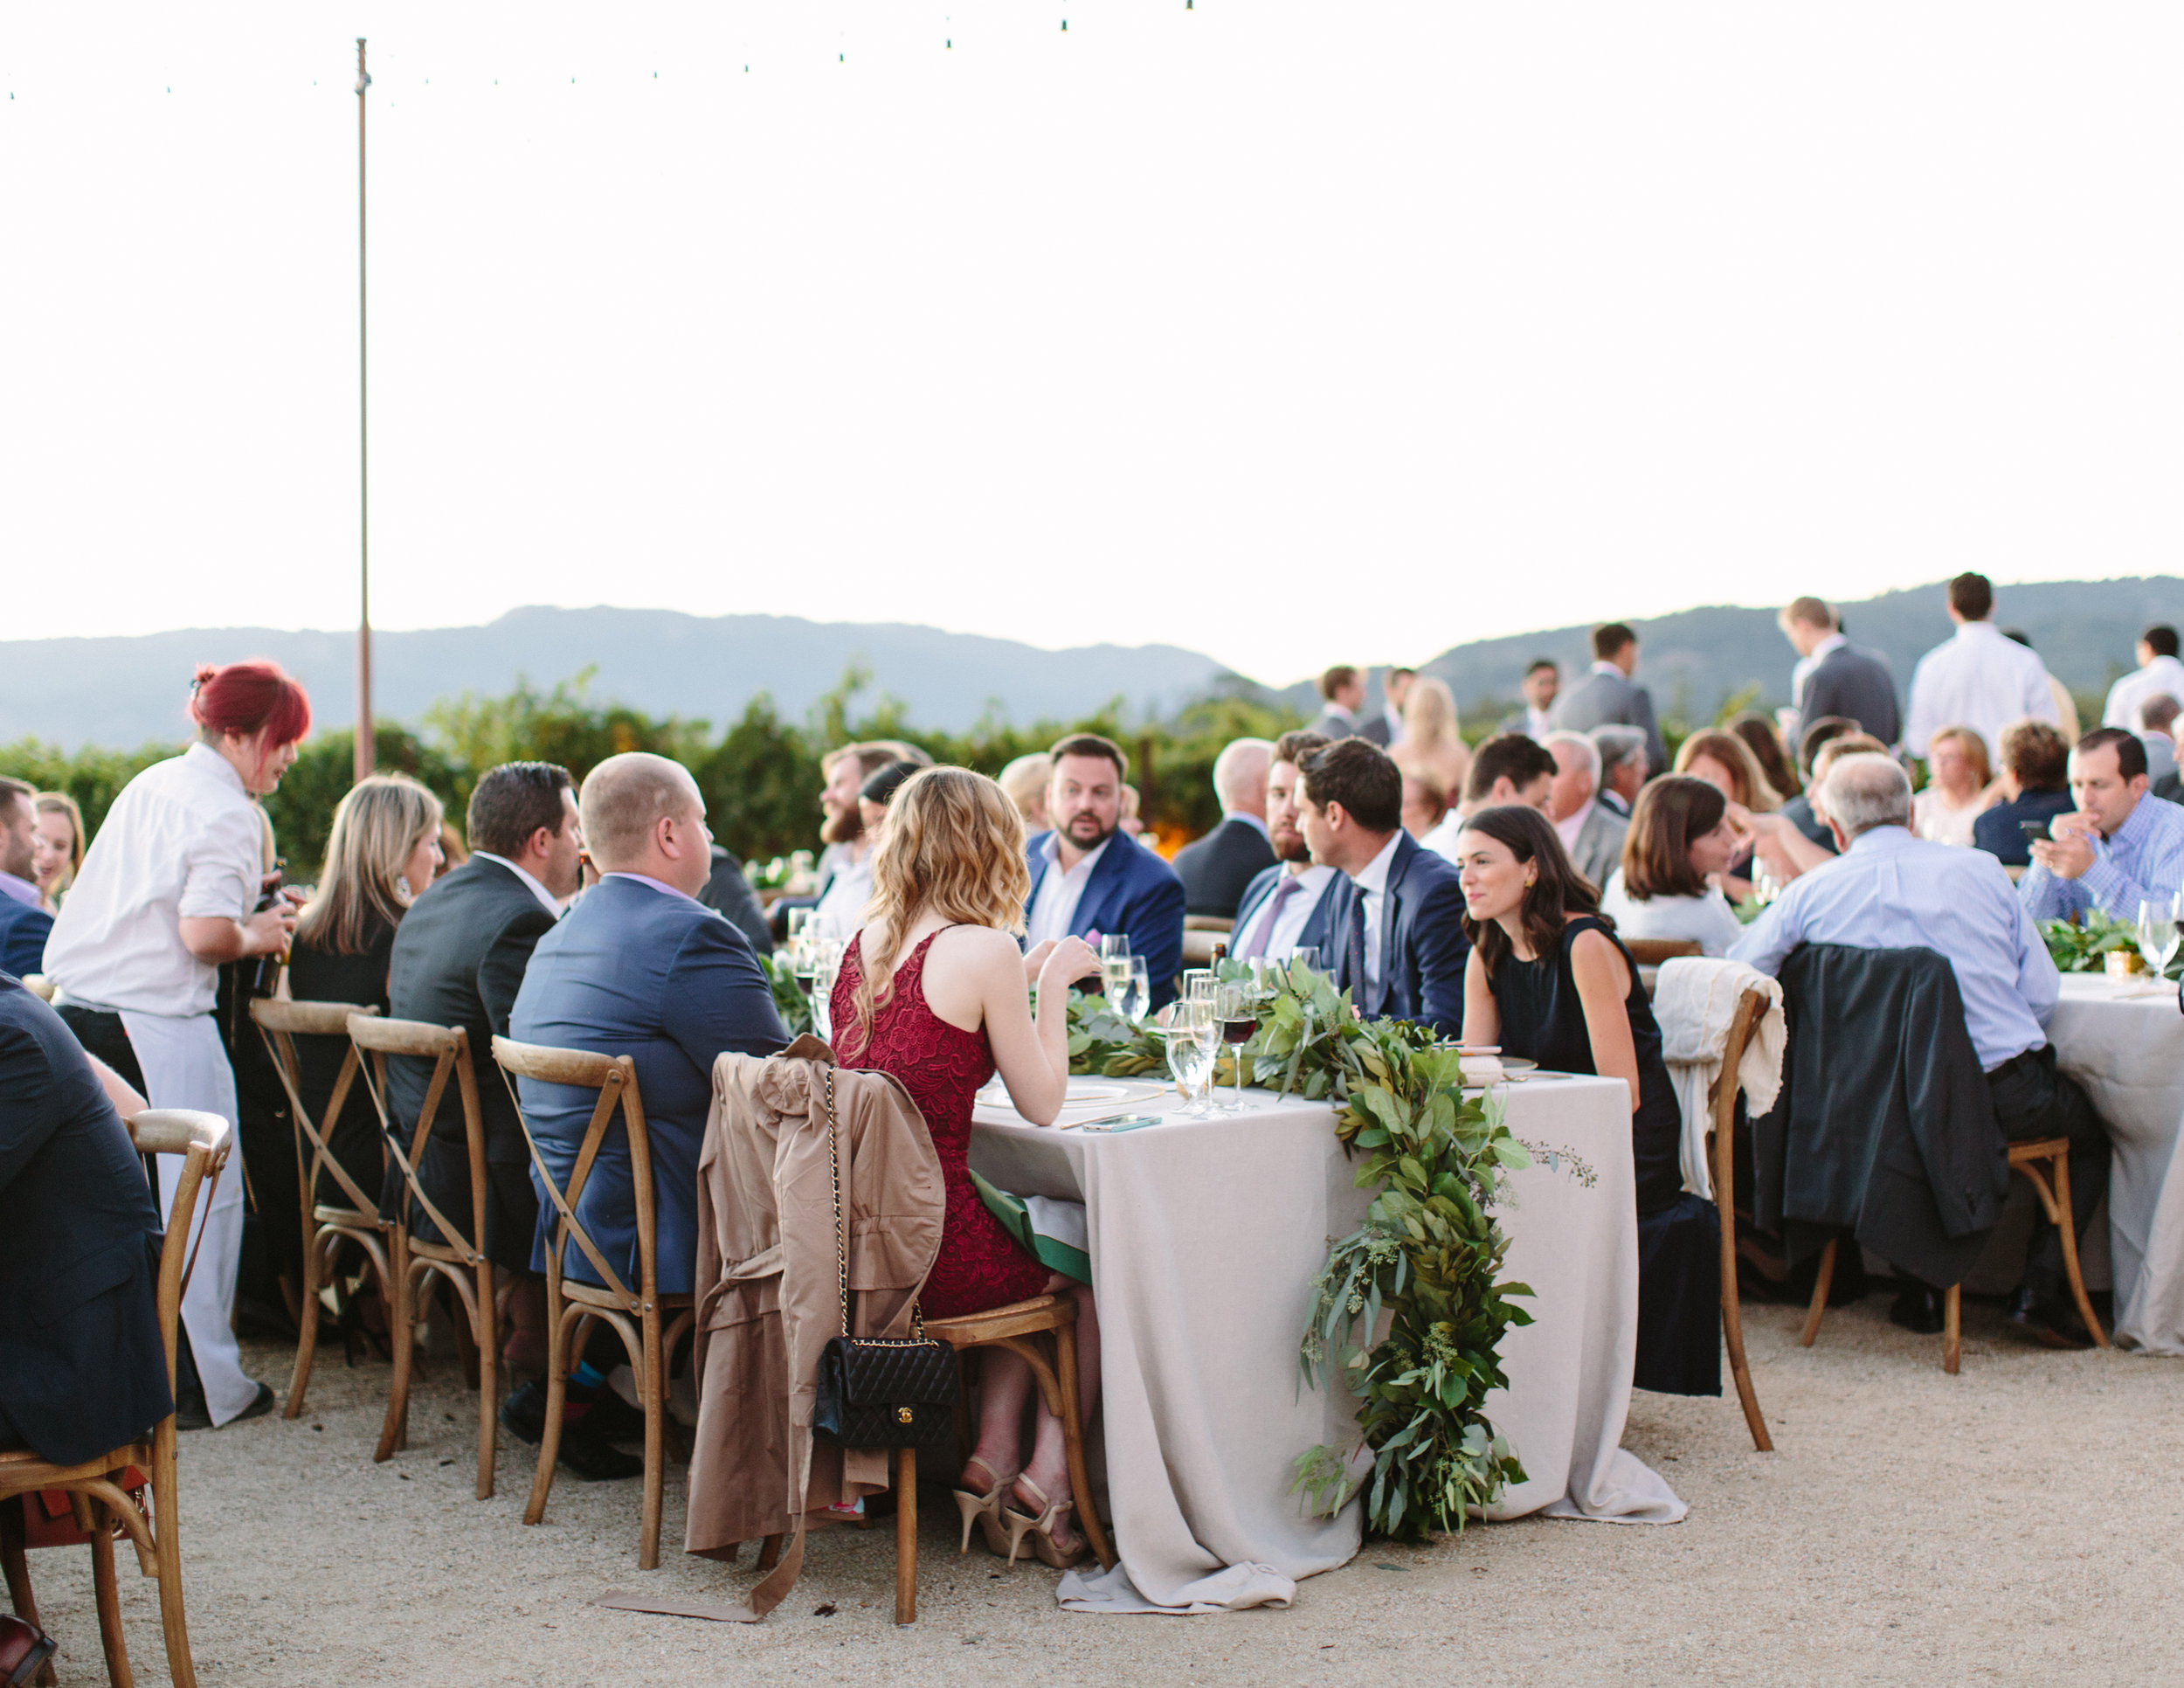 gundlach bundschu sonoma winery wedding 24.jpg